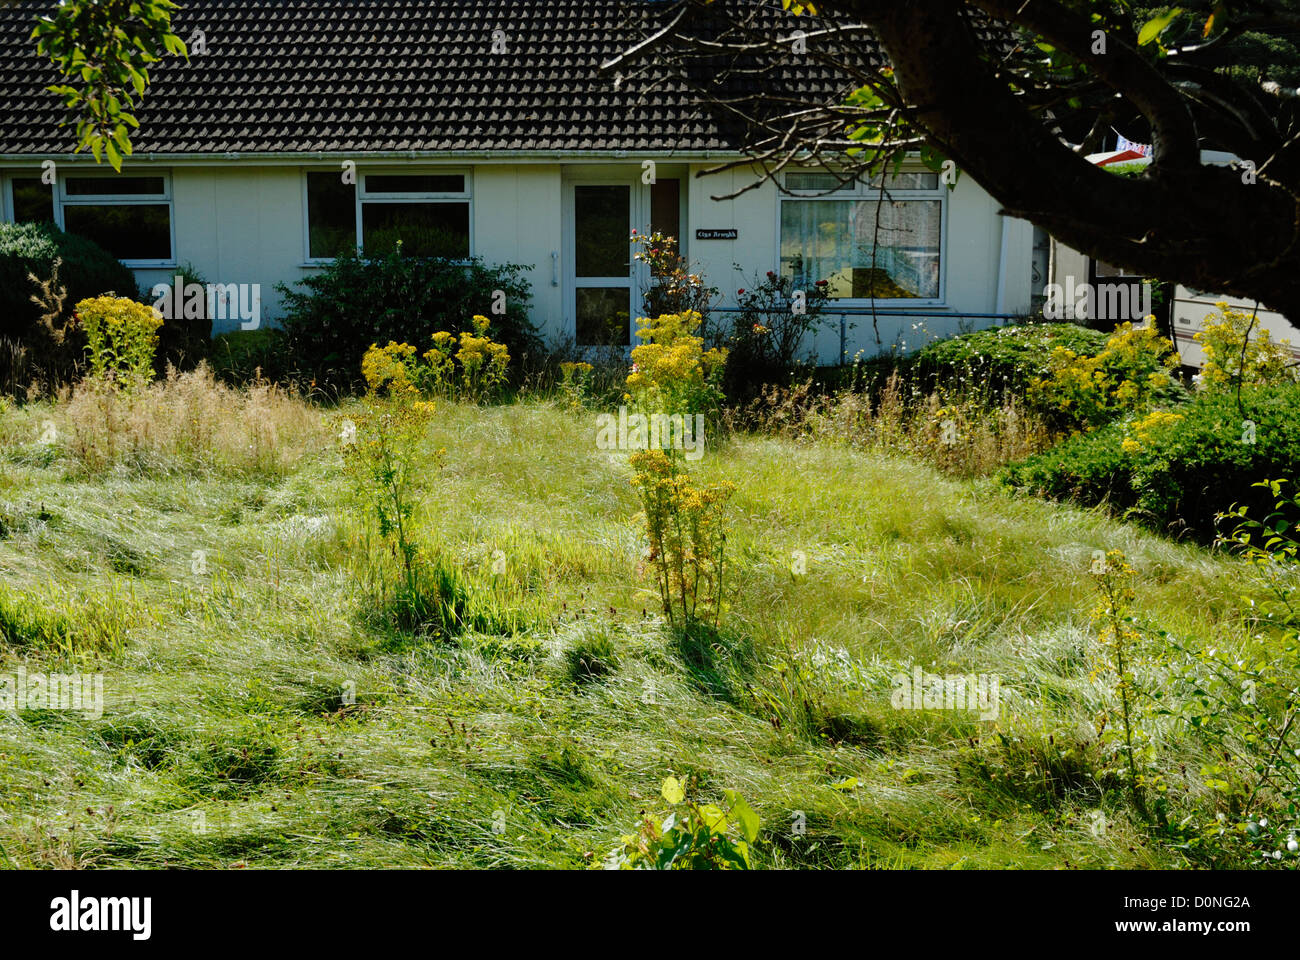 Unoccupied house, Wales - Stock Image